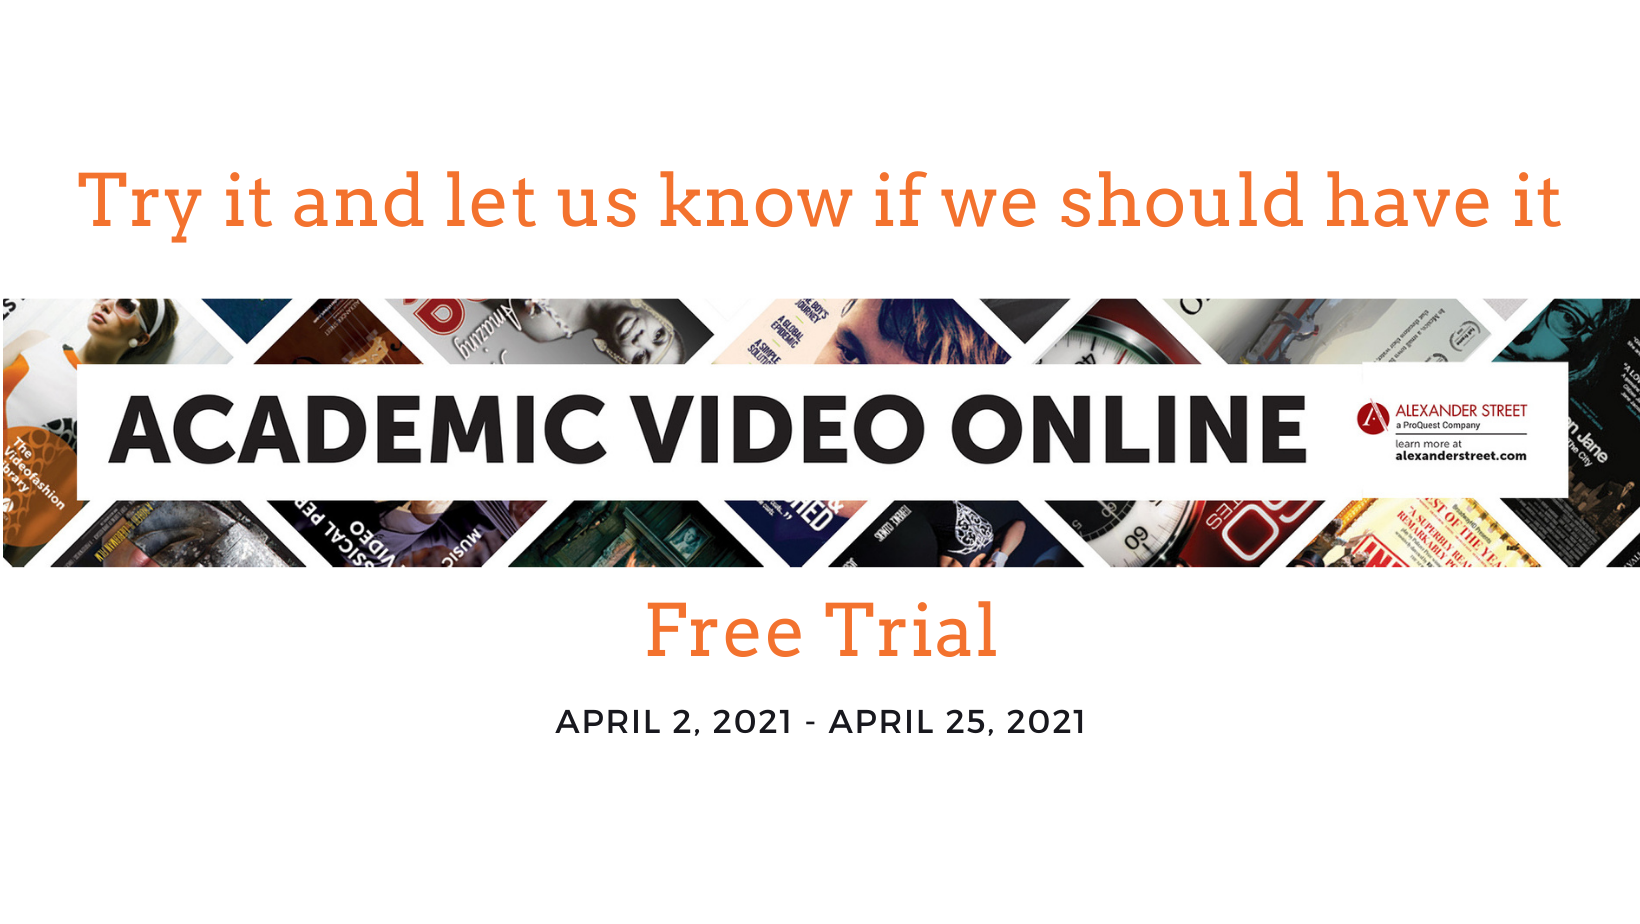 Access free trial and let usknow what you think